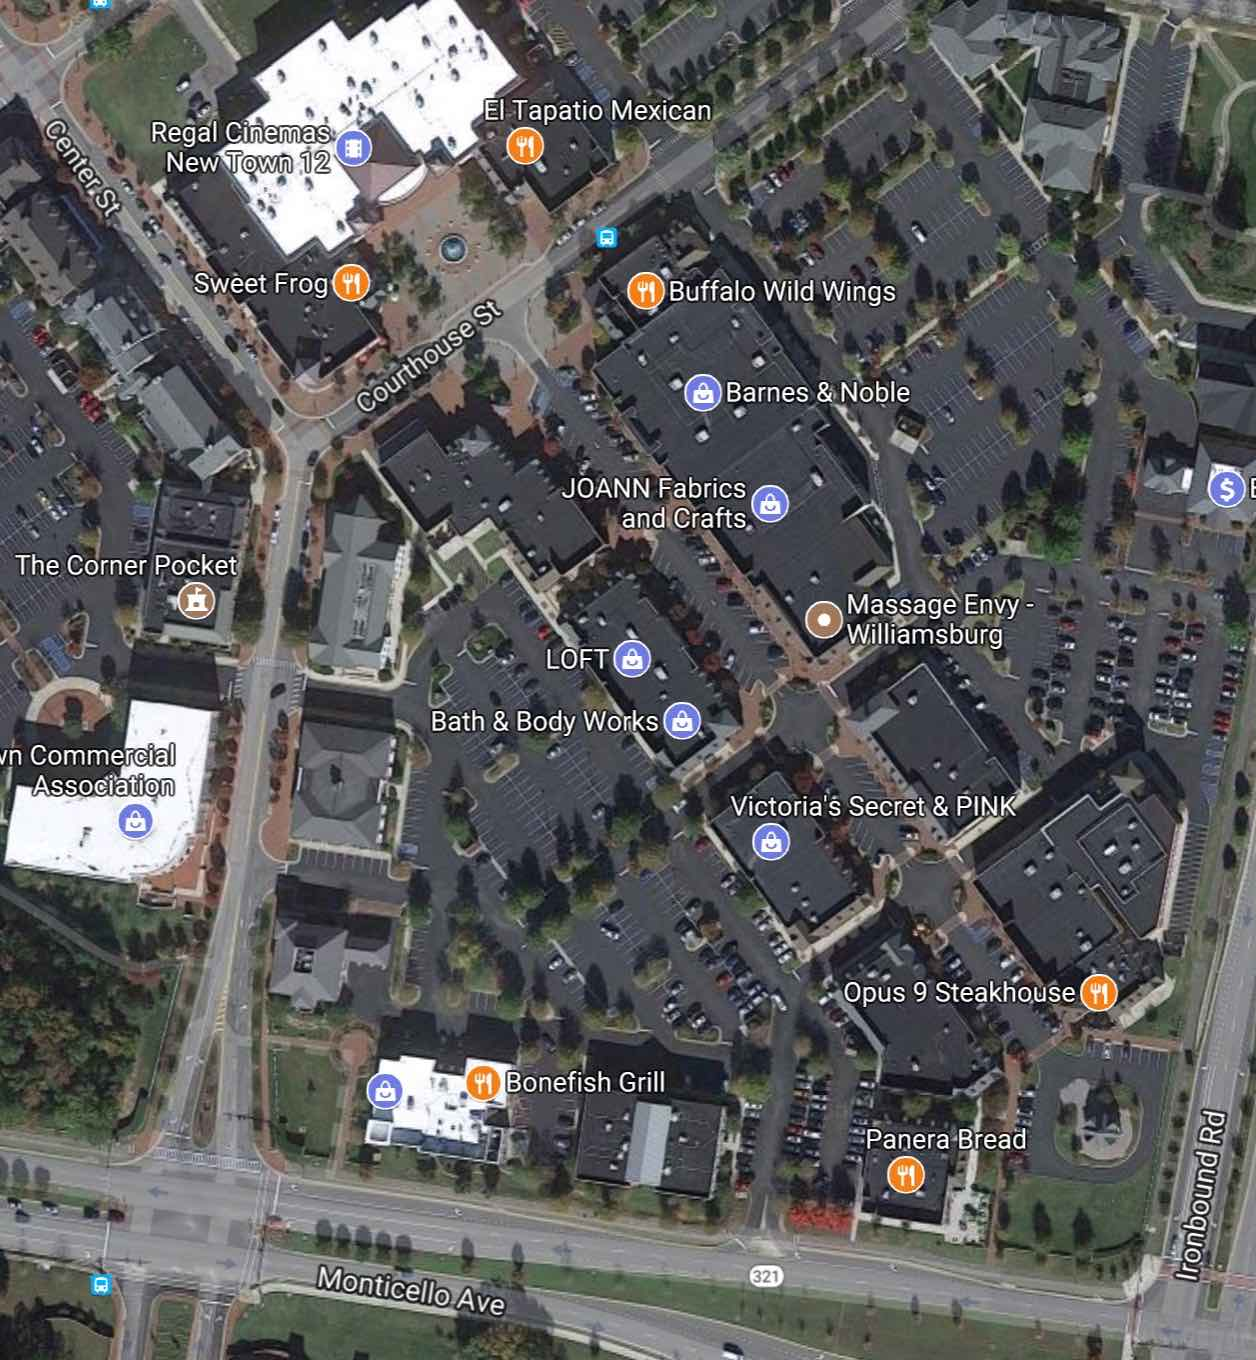 New Town Shops - Developers Realty Corporation